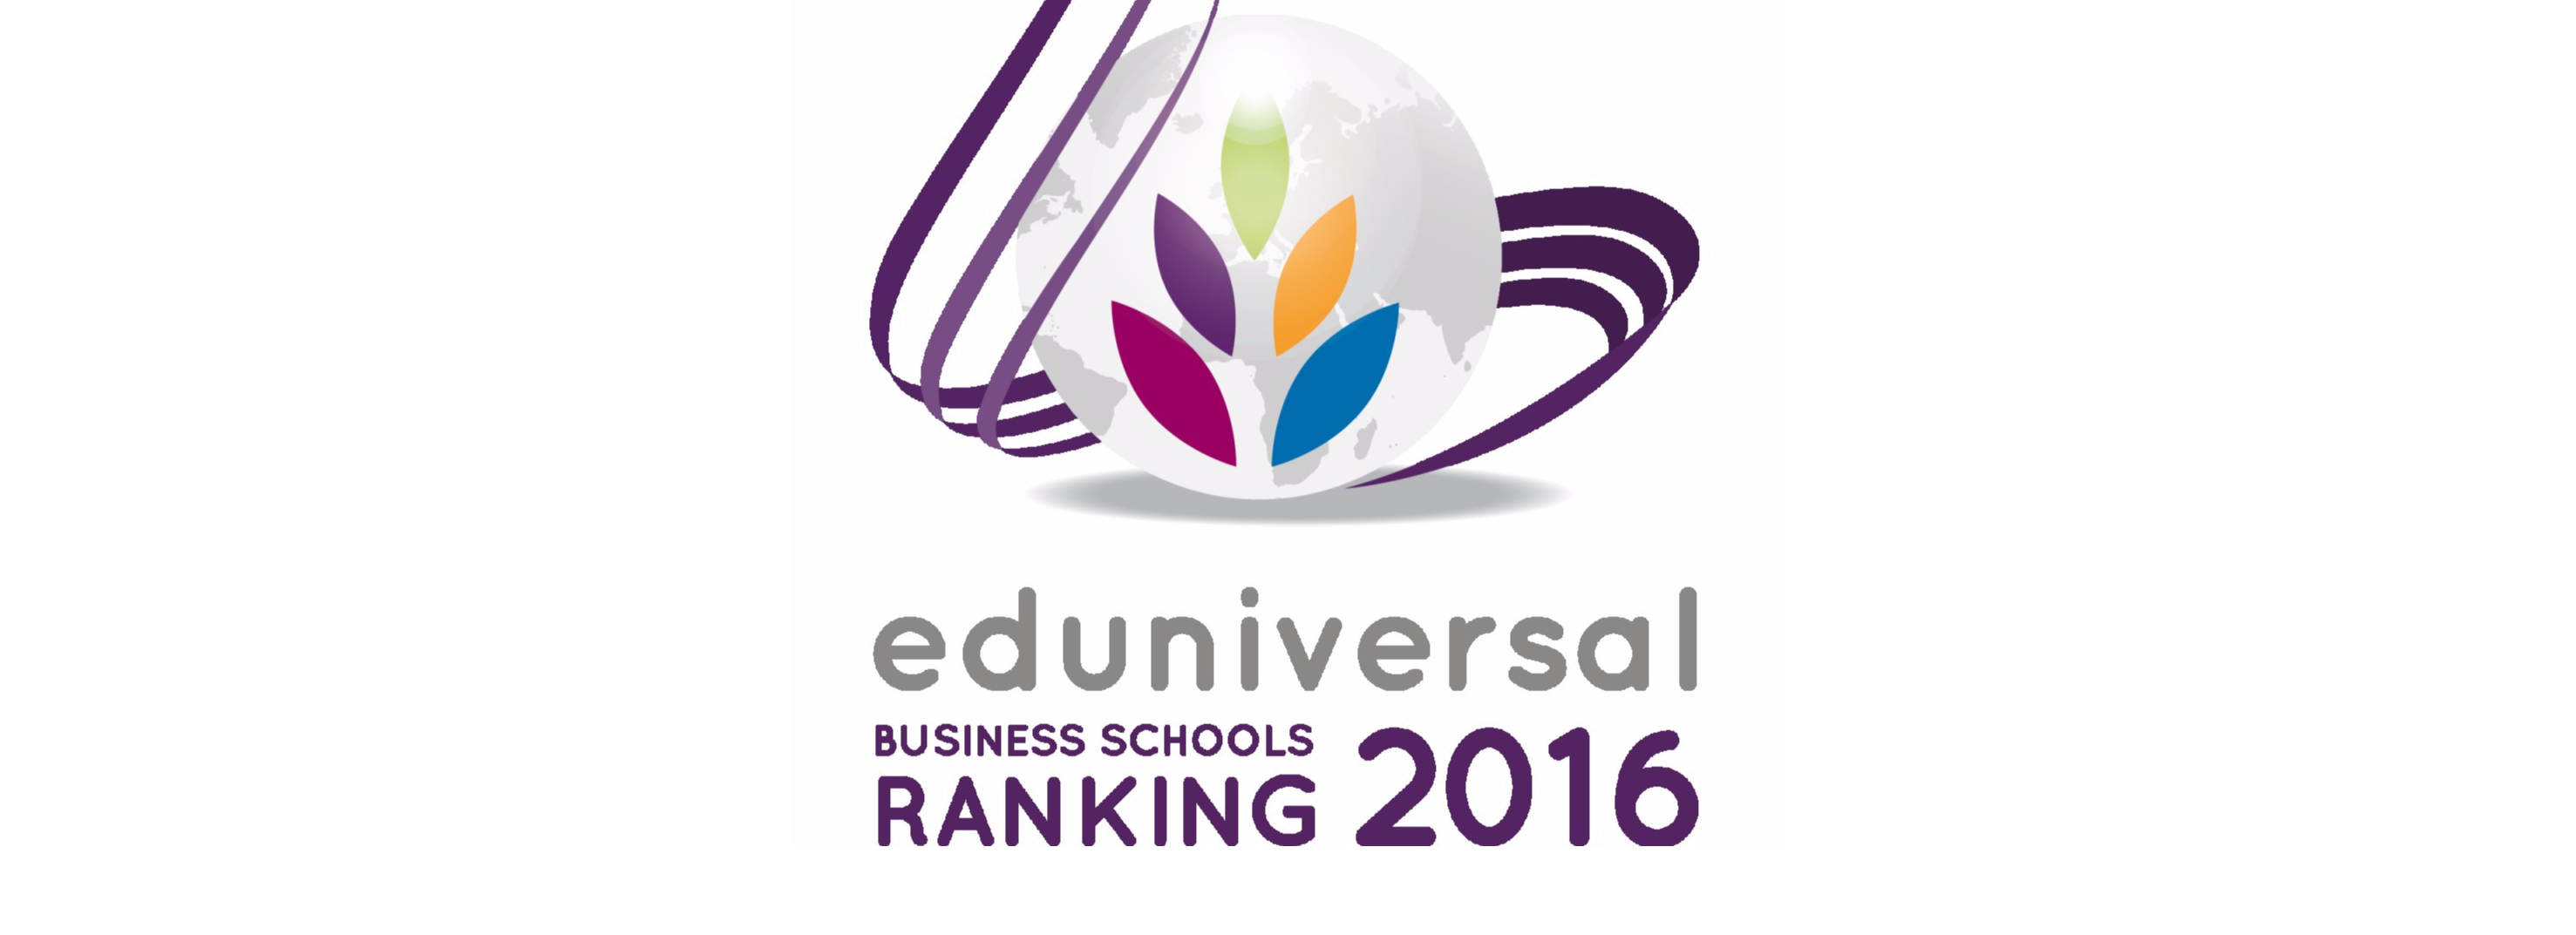 UC3M Business, 4-palmes in the 2016 Eduniversal ranking